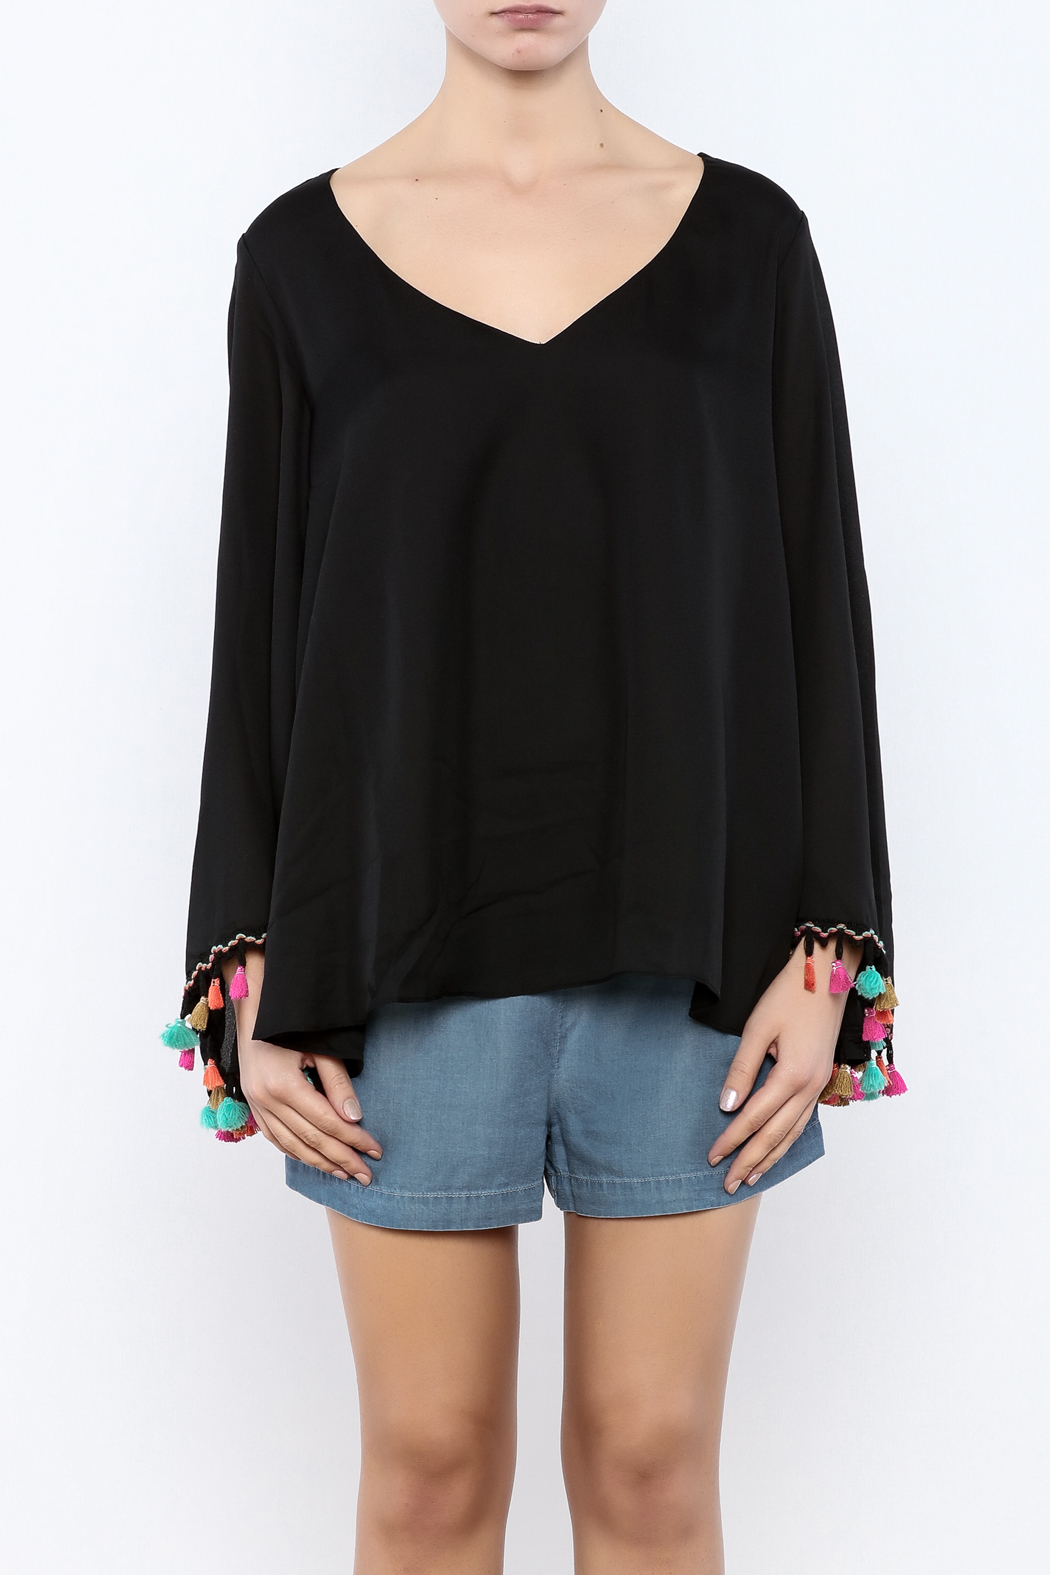 Judith March Festive Bell-Sleeved Top - Side Cropped Image